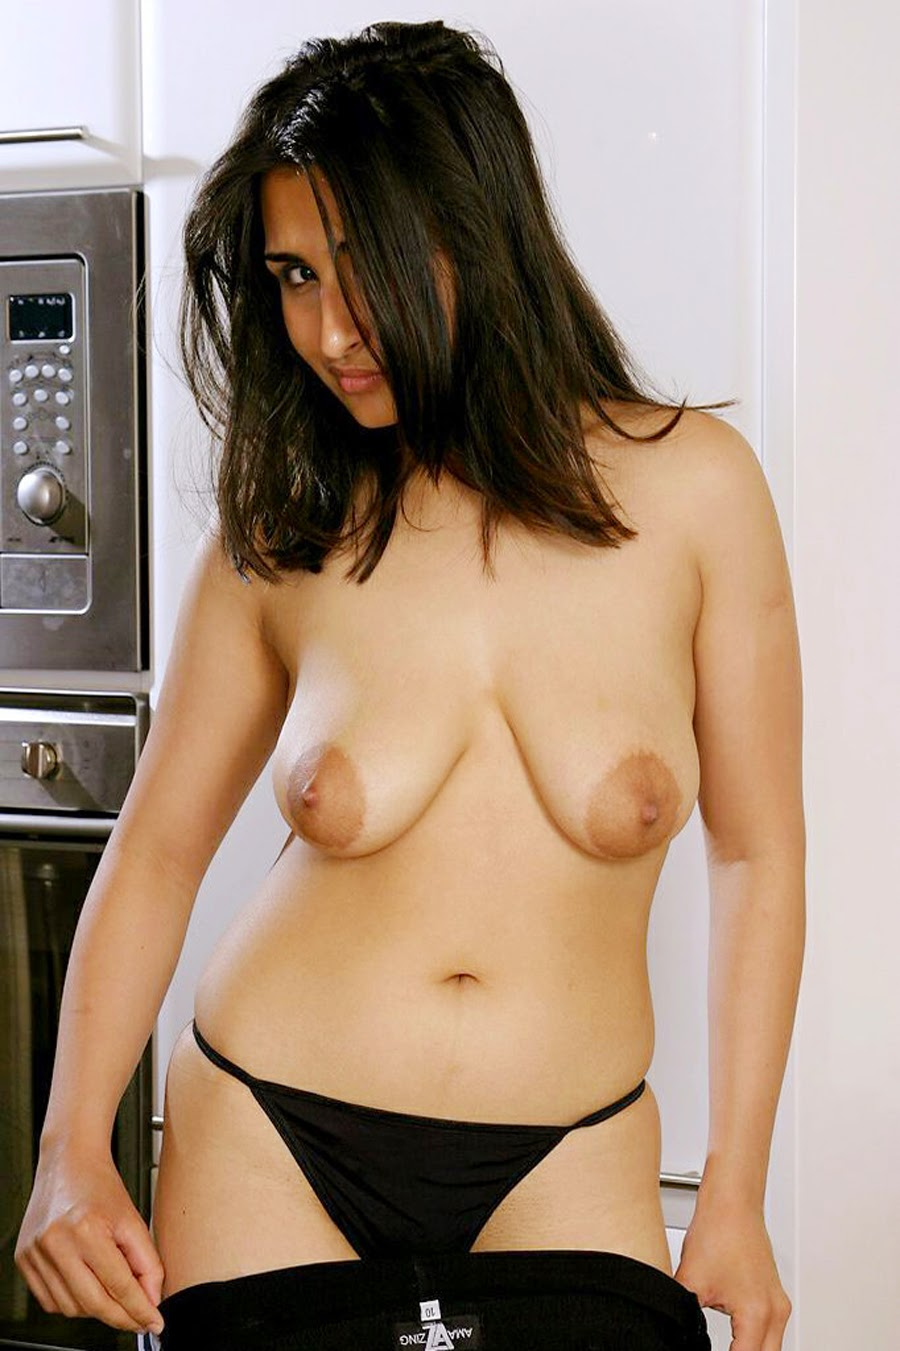 South Indian Slut Posing Nude Pictures